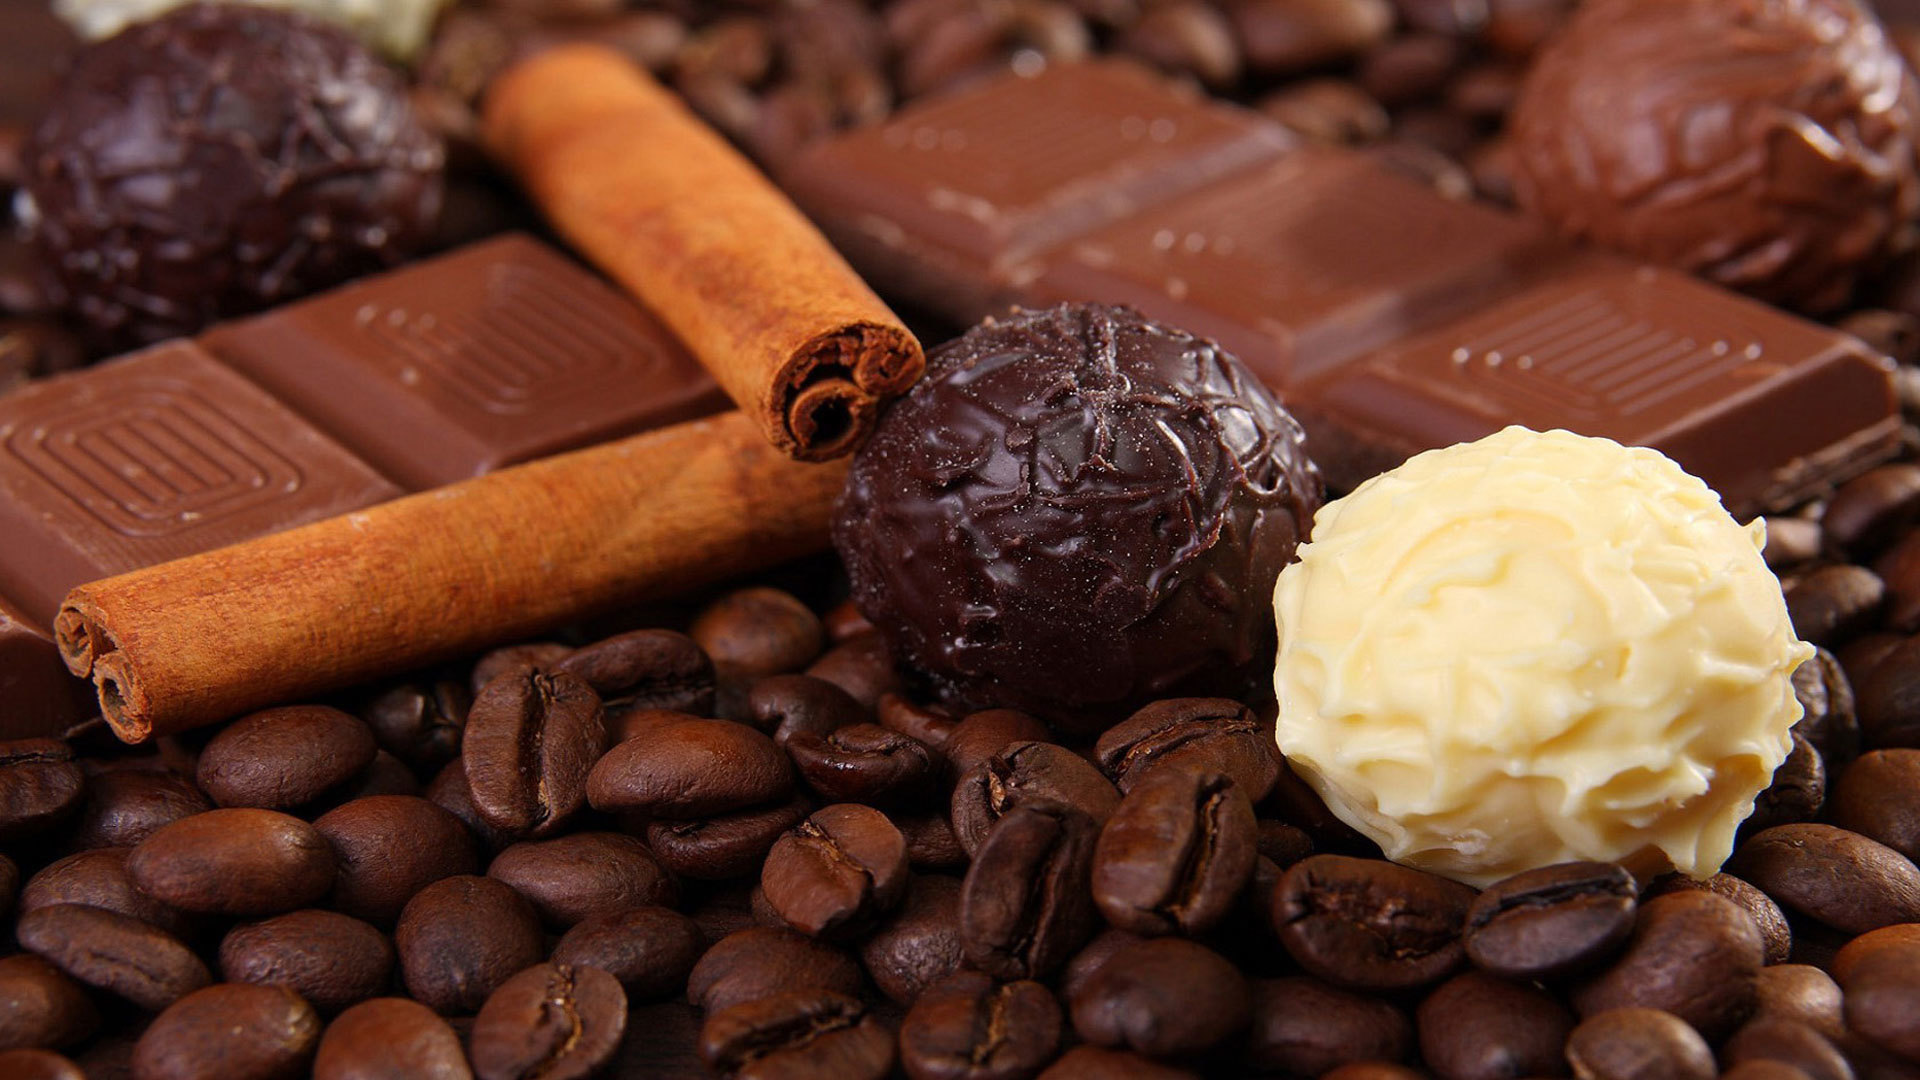 44044 download wallpaper Food, Chocolate, Objects screensavers and pictures for free